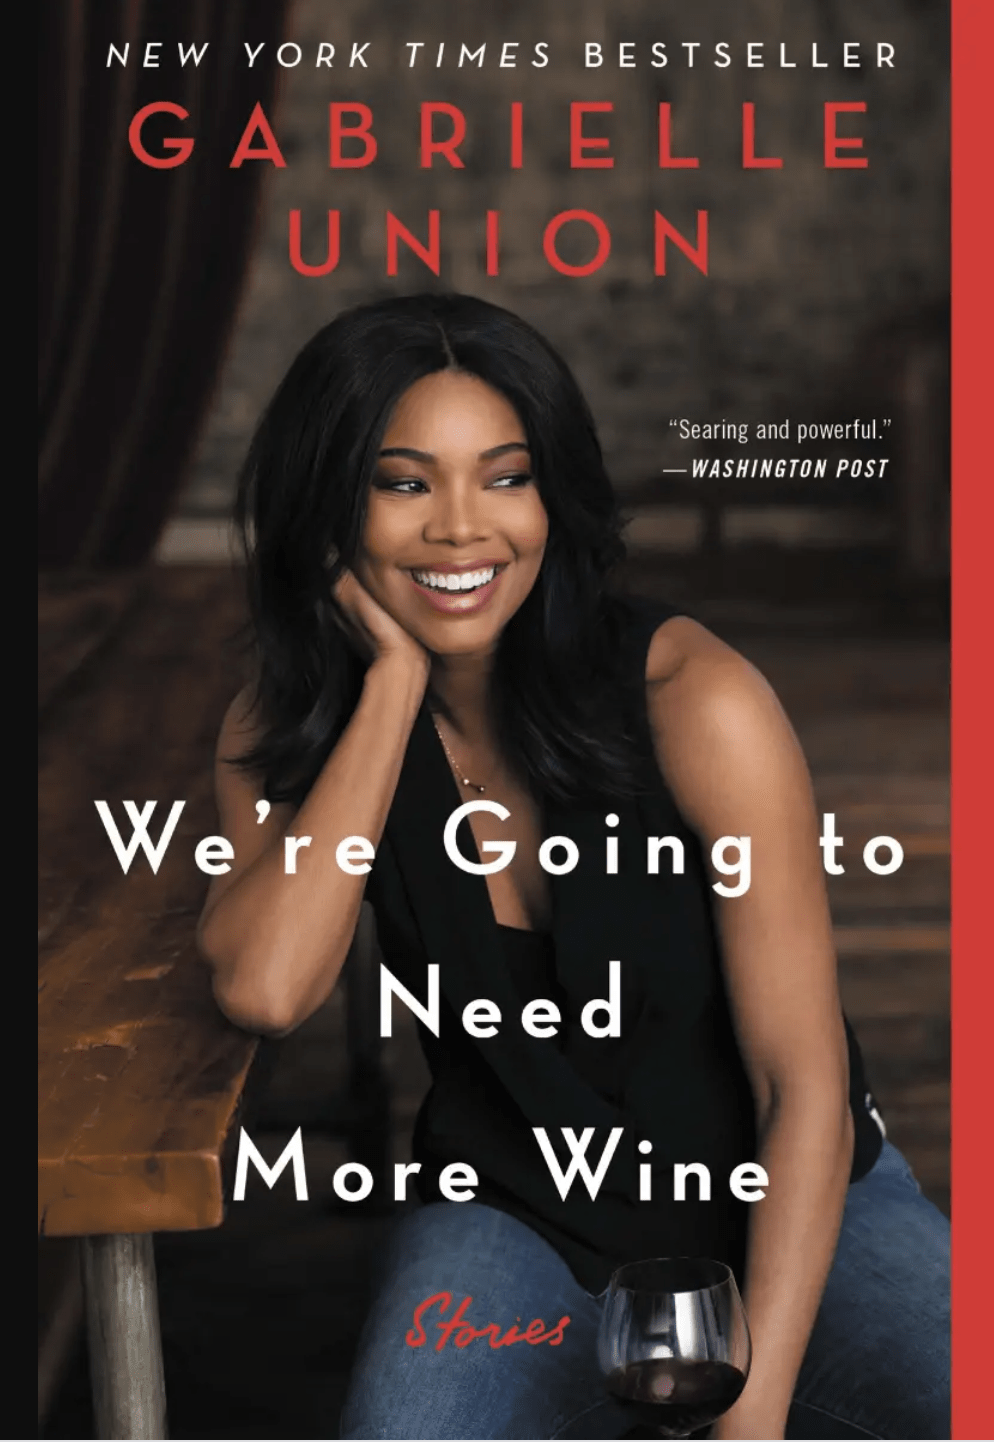 We're Going to Need More Wine: Stories by Gabrielle Union That Are Funny, Complicated, and True